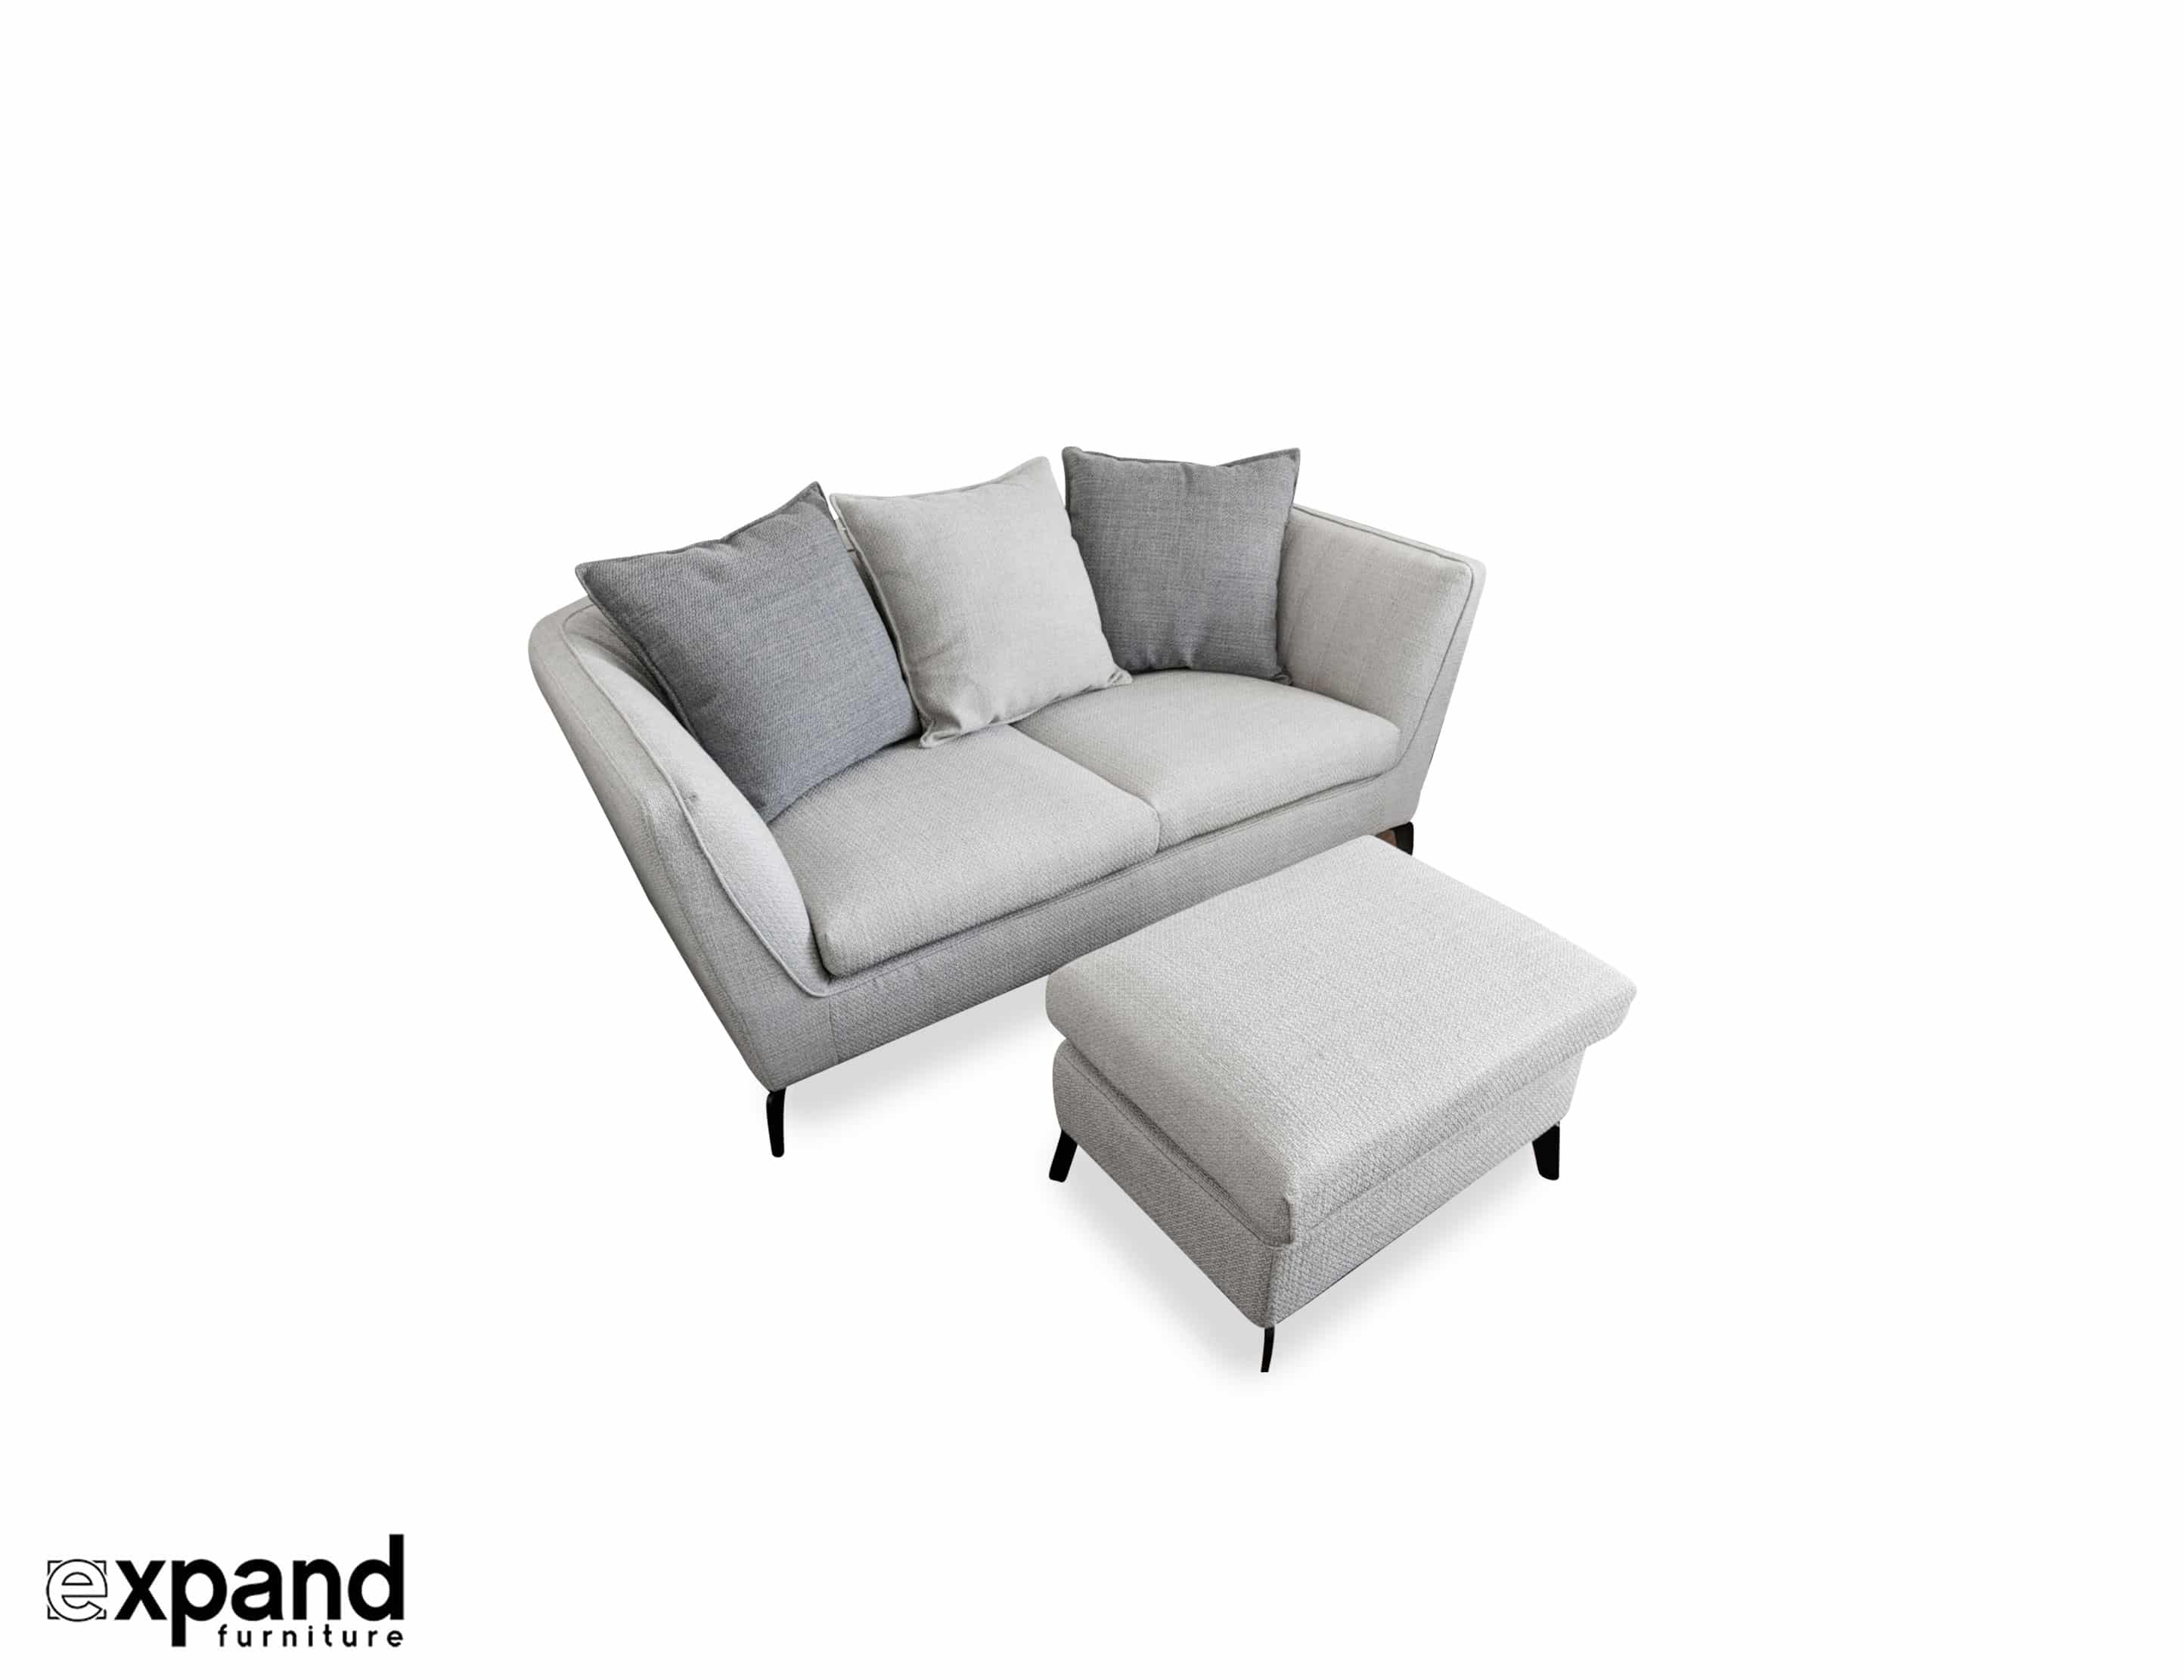 Skyline: Small Apartment Sofa with Ottoman | Expand Furniture ...